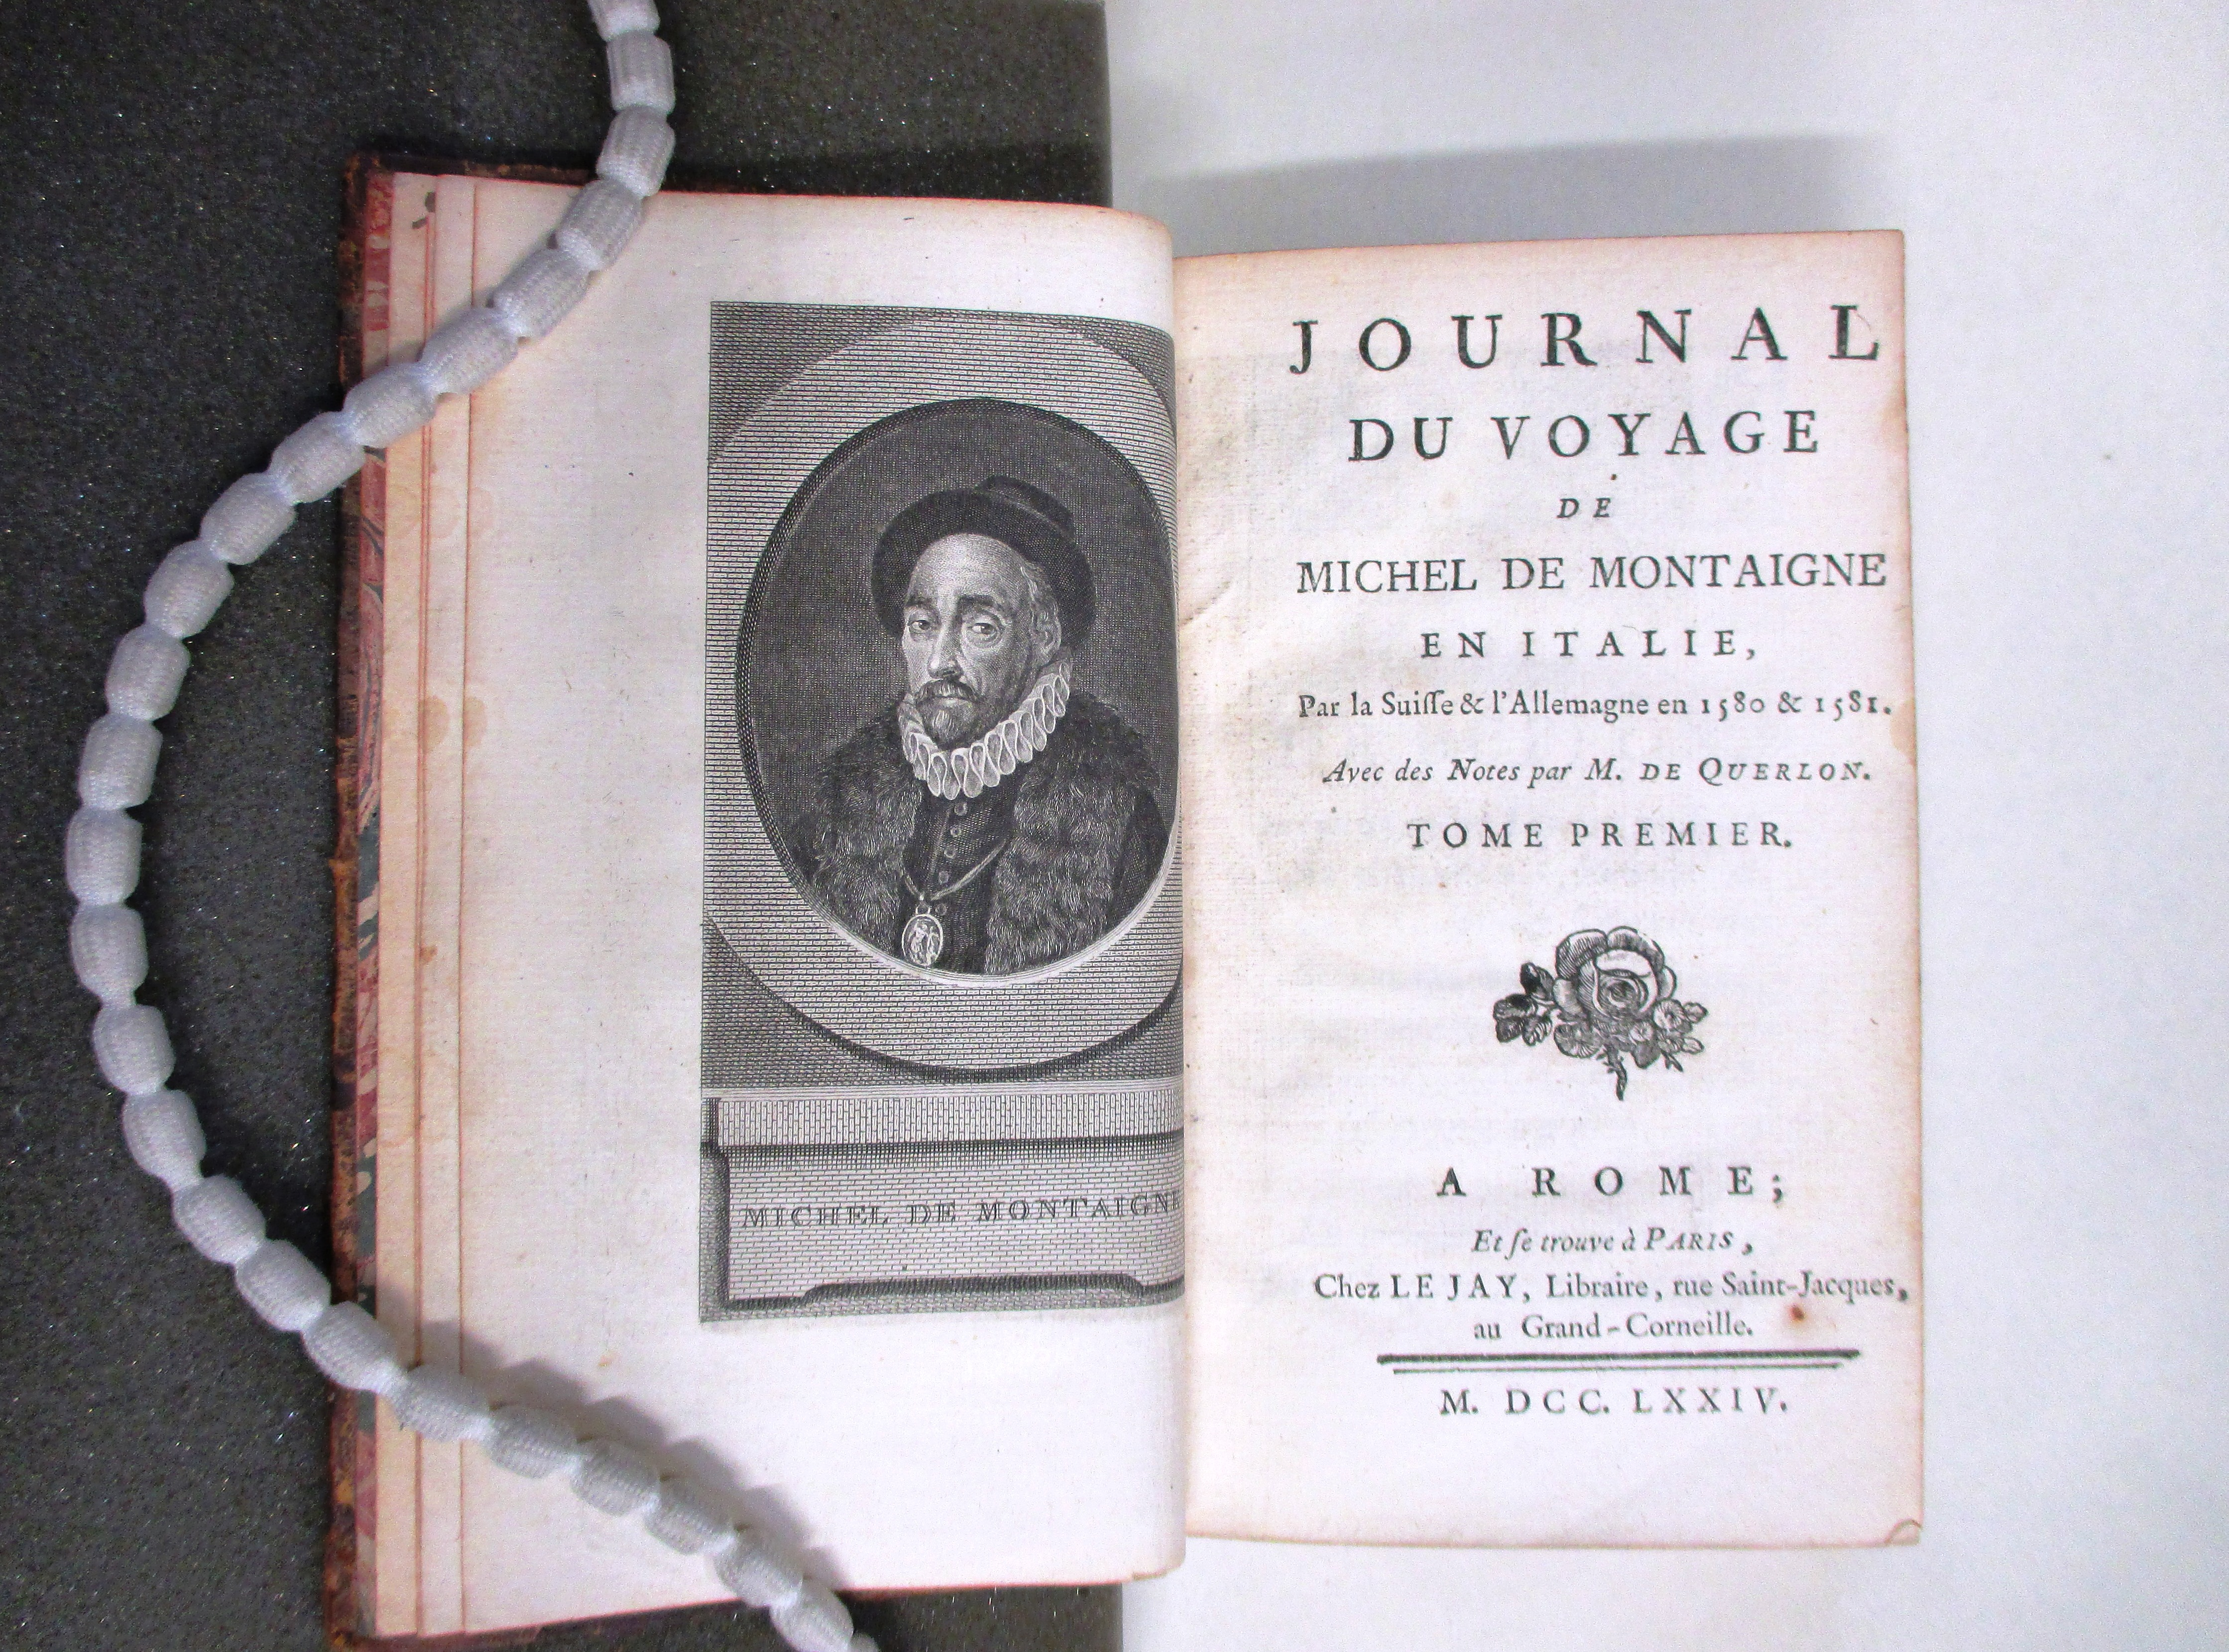 michel de montaigne taylor institution library  and travel books are a feature of the sayce collection is the one describing a journey which montaigne undertook to journal du voyage de michel